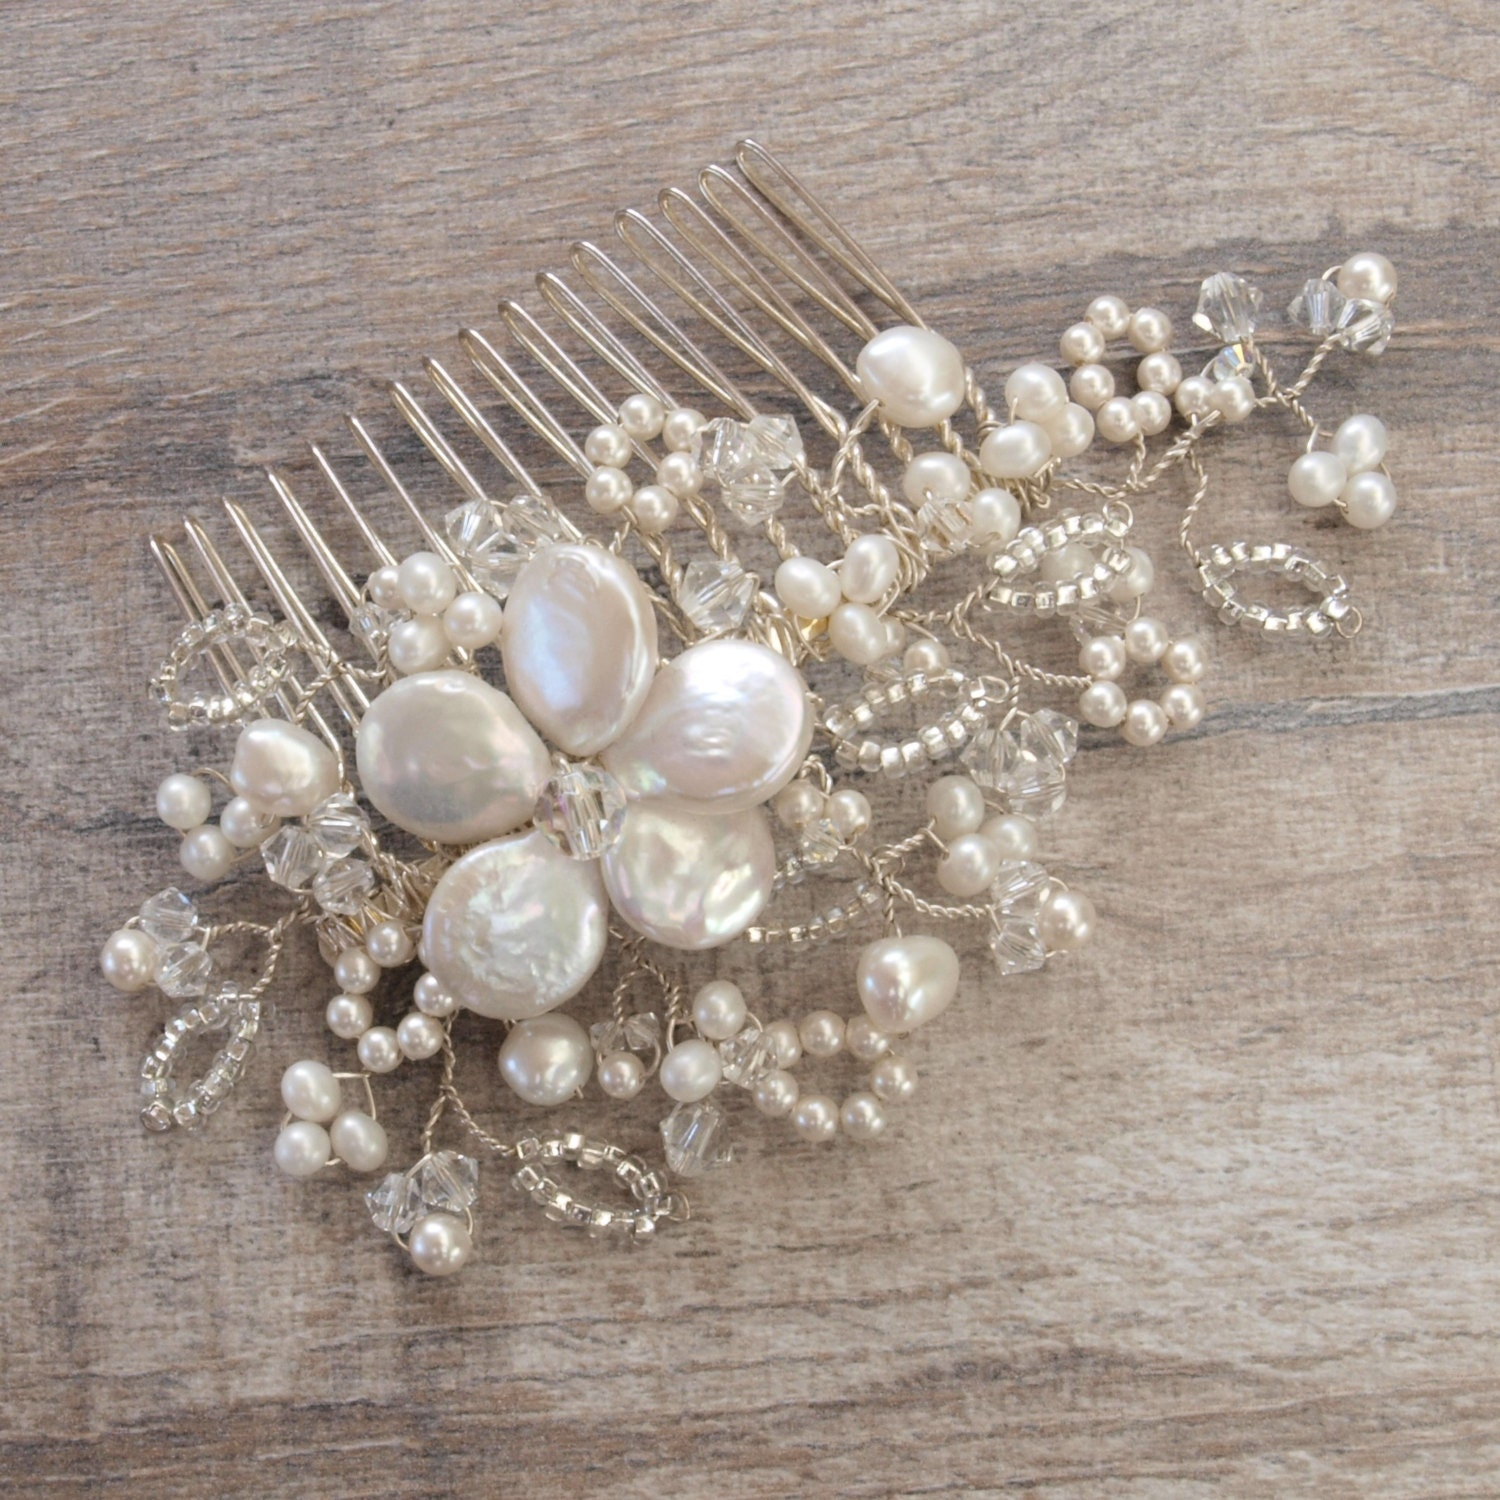 Antique Lace Hair Comb Floral Headpiece Lace Inspired Bridal Headdress Ivory Pearl Clear Crystal